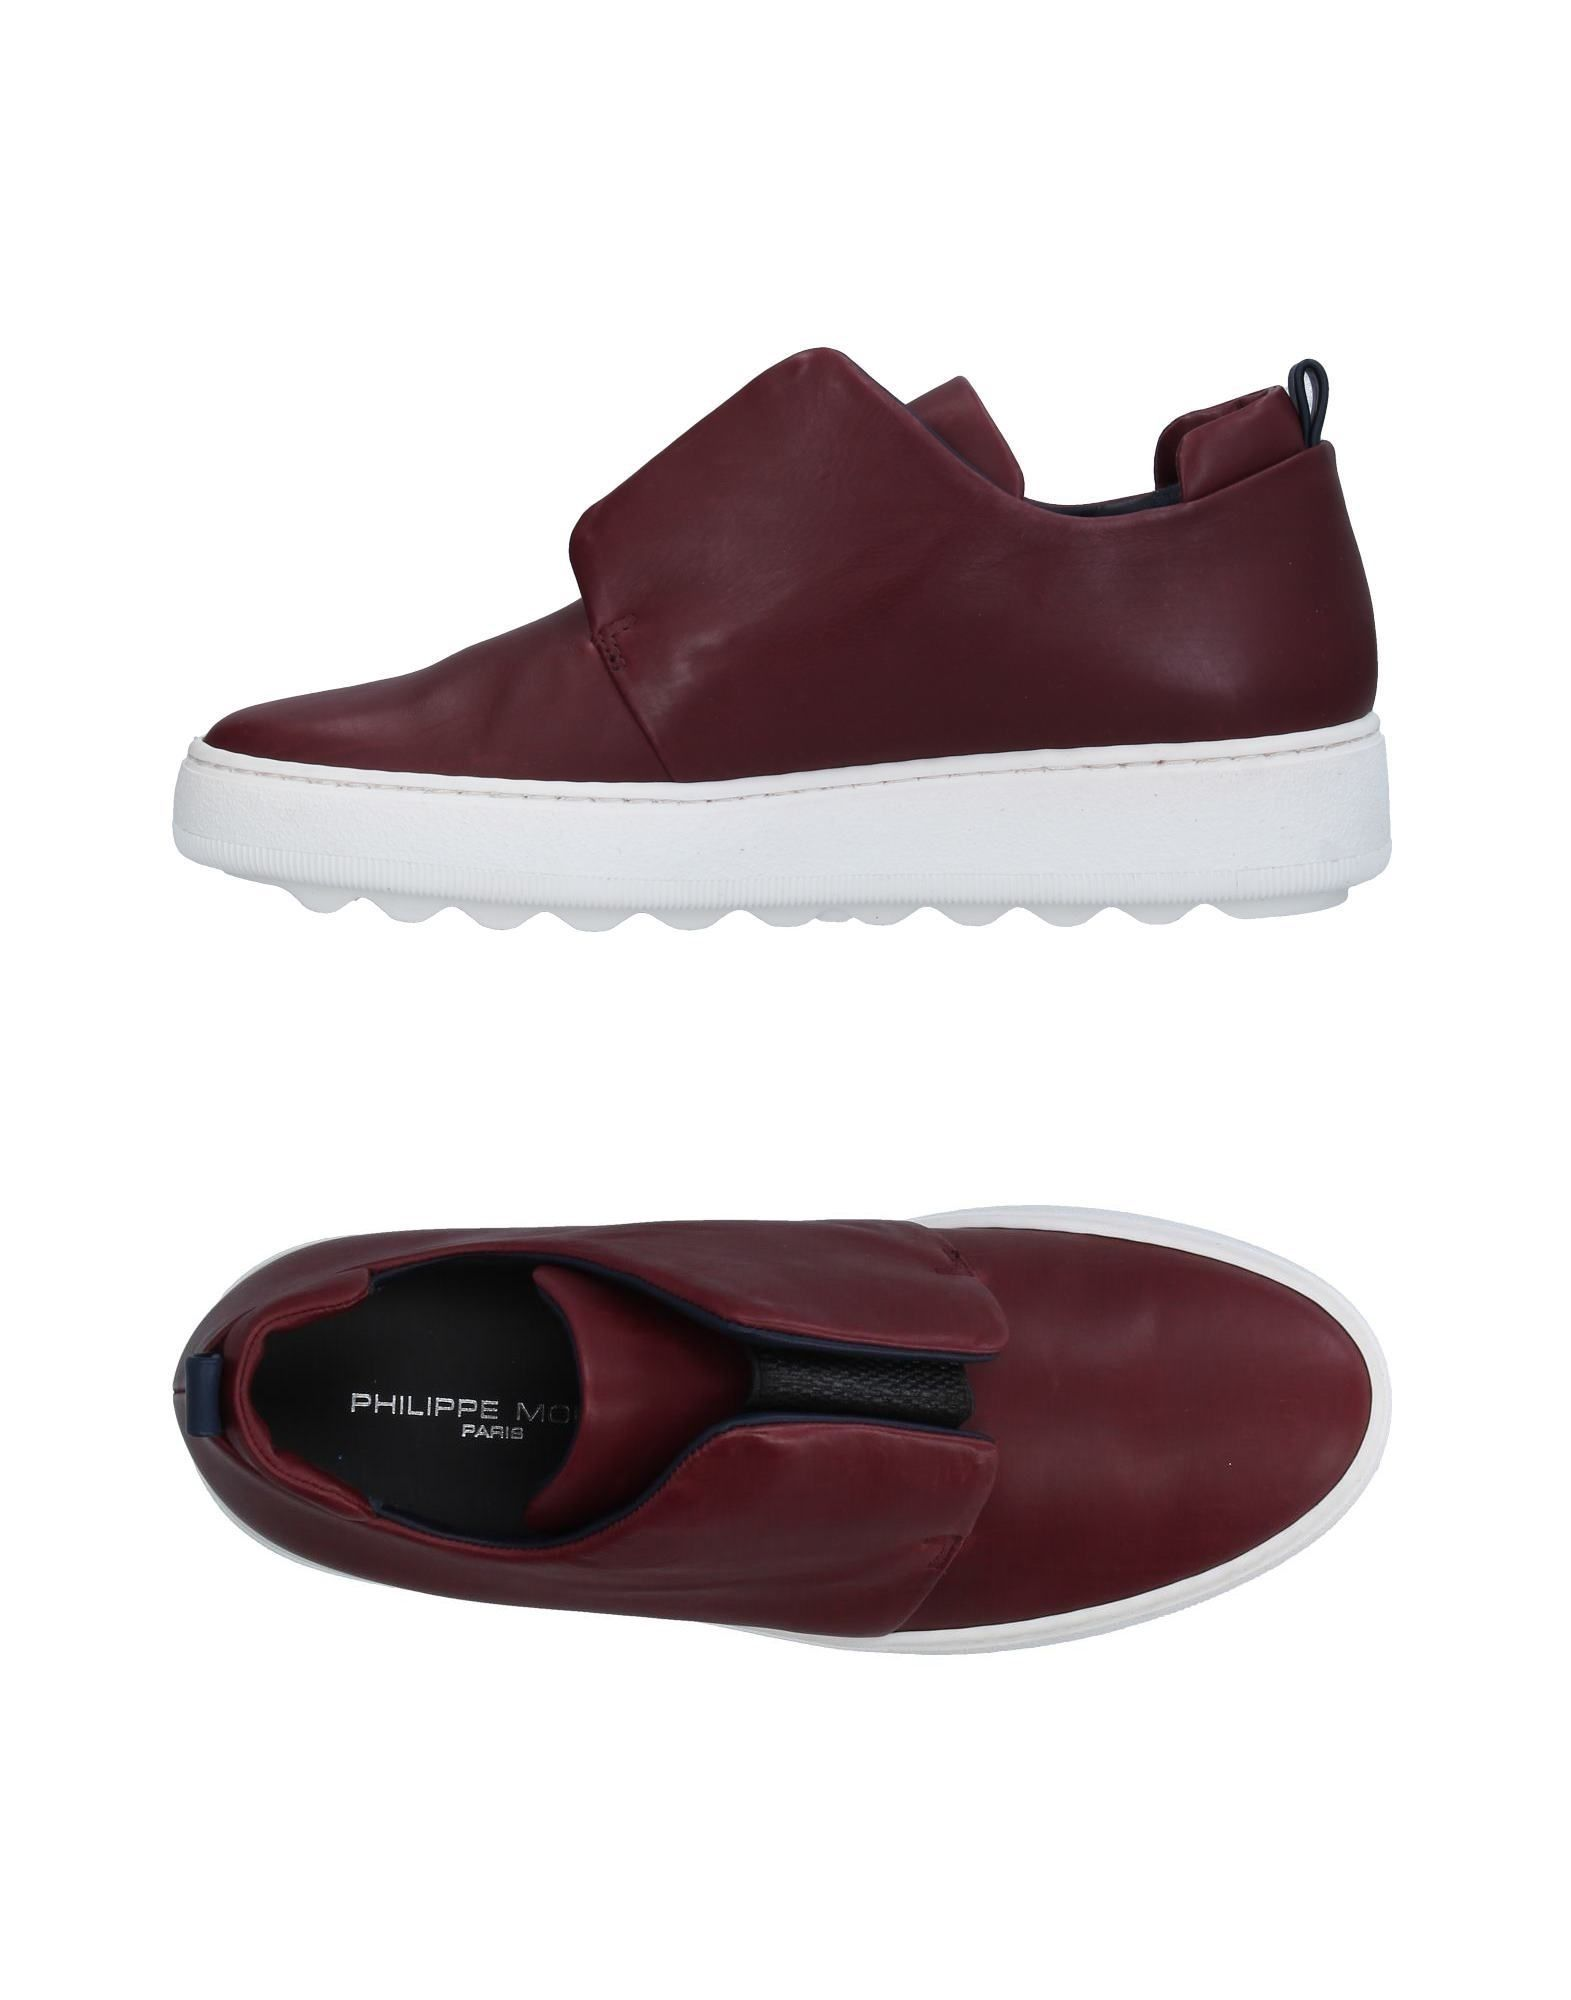 Philippe Model Maroon Calf Leather Sneakers